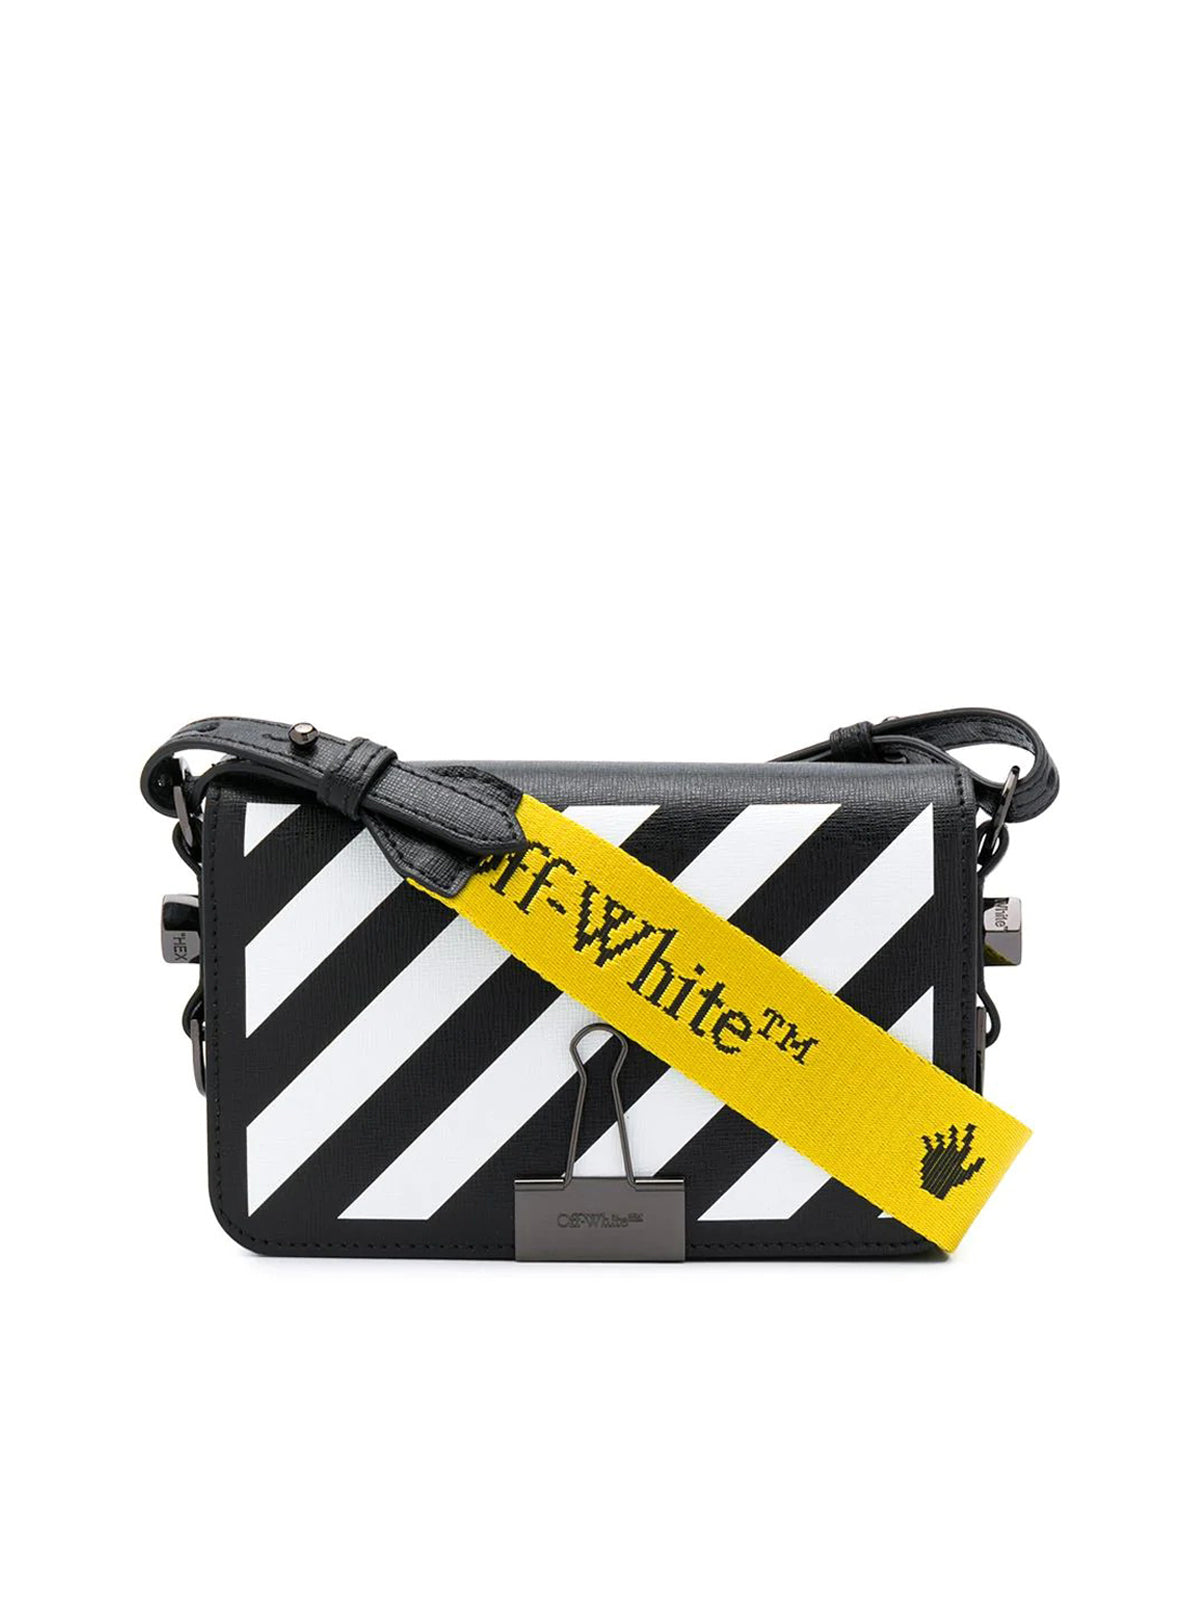 binder-clip striped crossbody bag